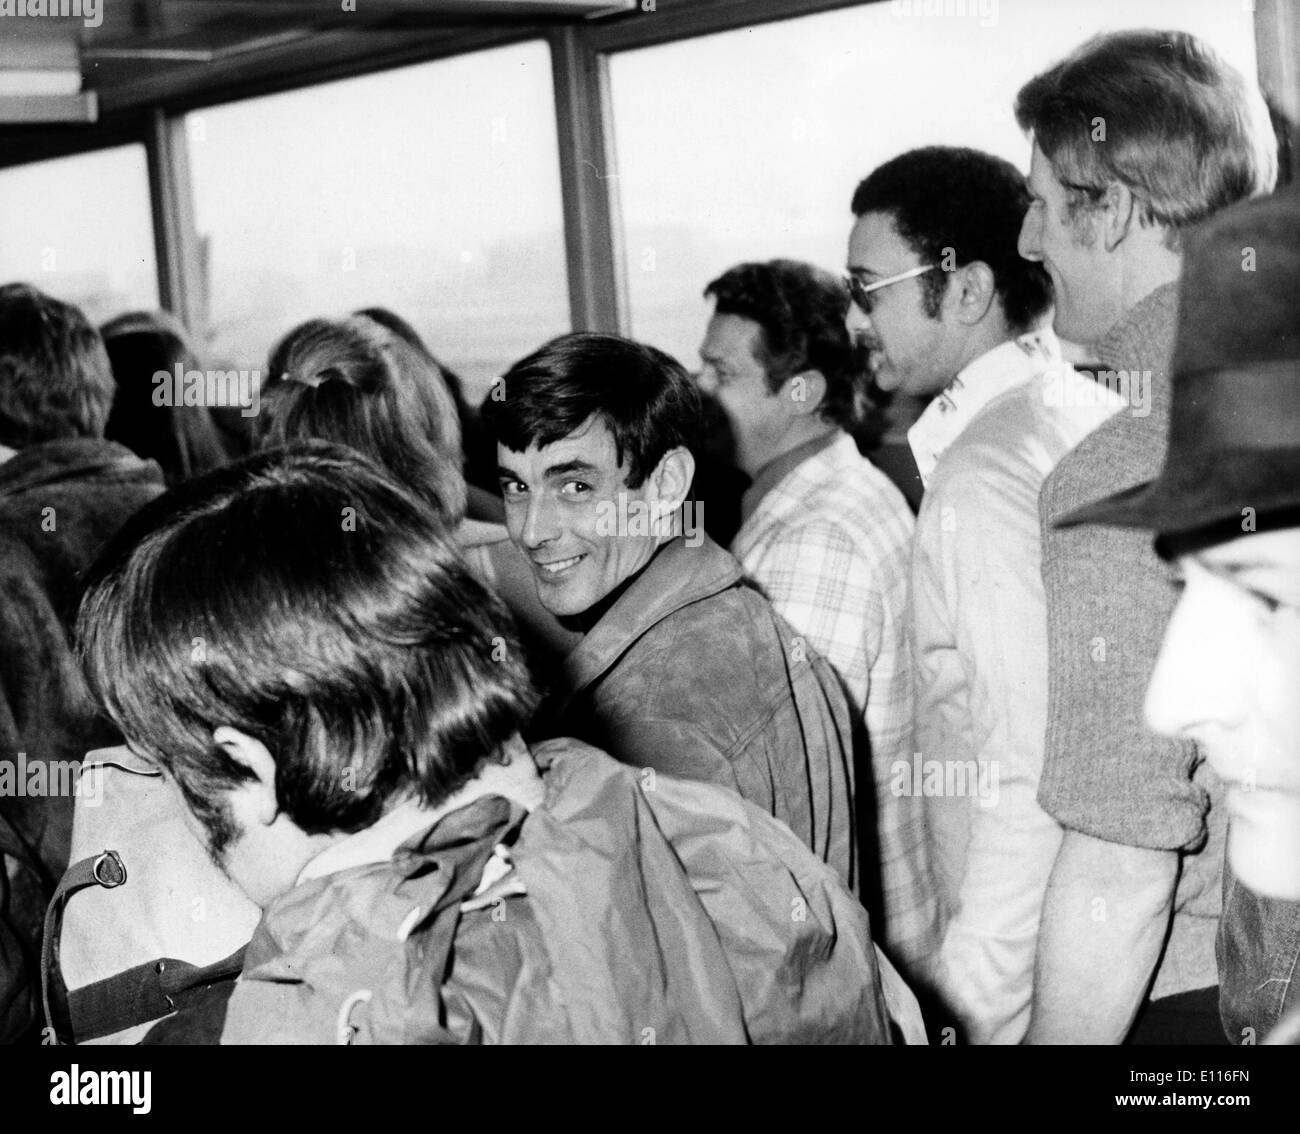 Jan 28, 1976; London, UK; A party of British mercenaries flew out from London's Heathrow airport today bound - Stock Image